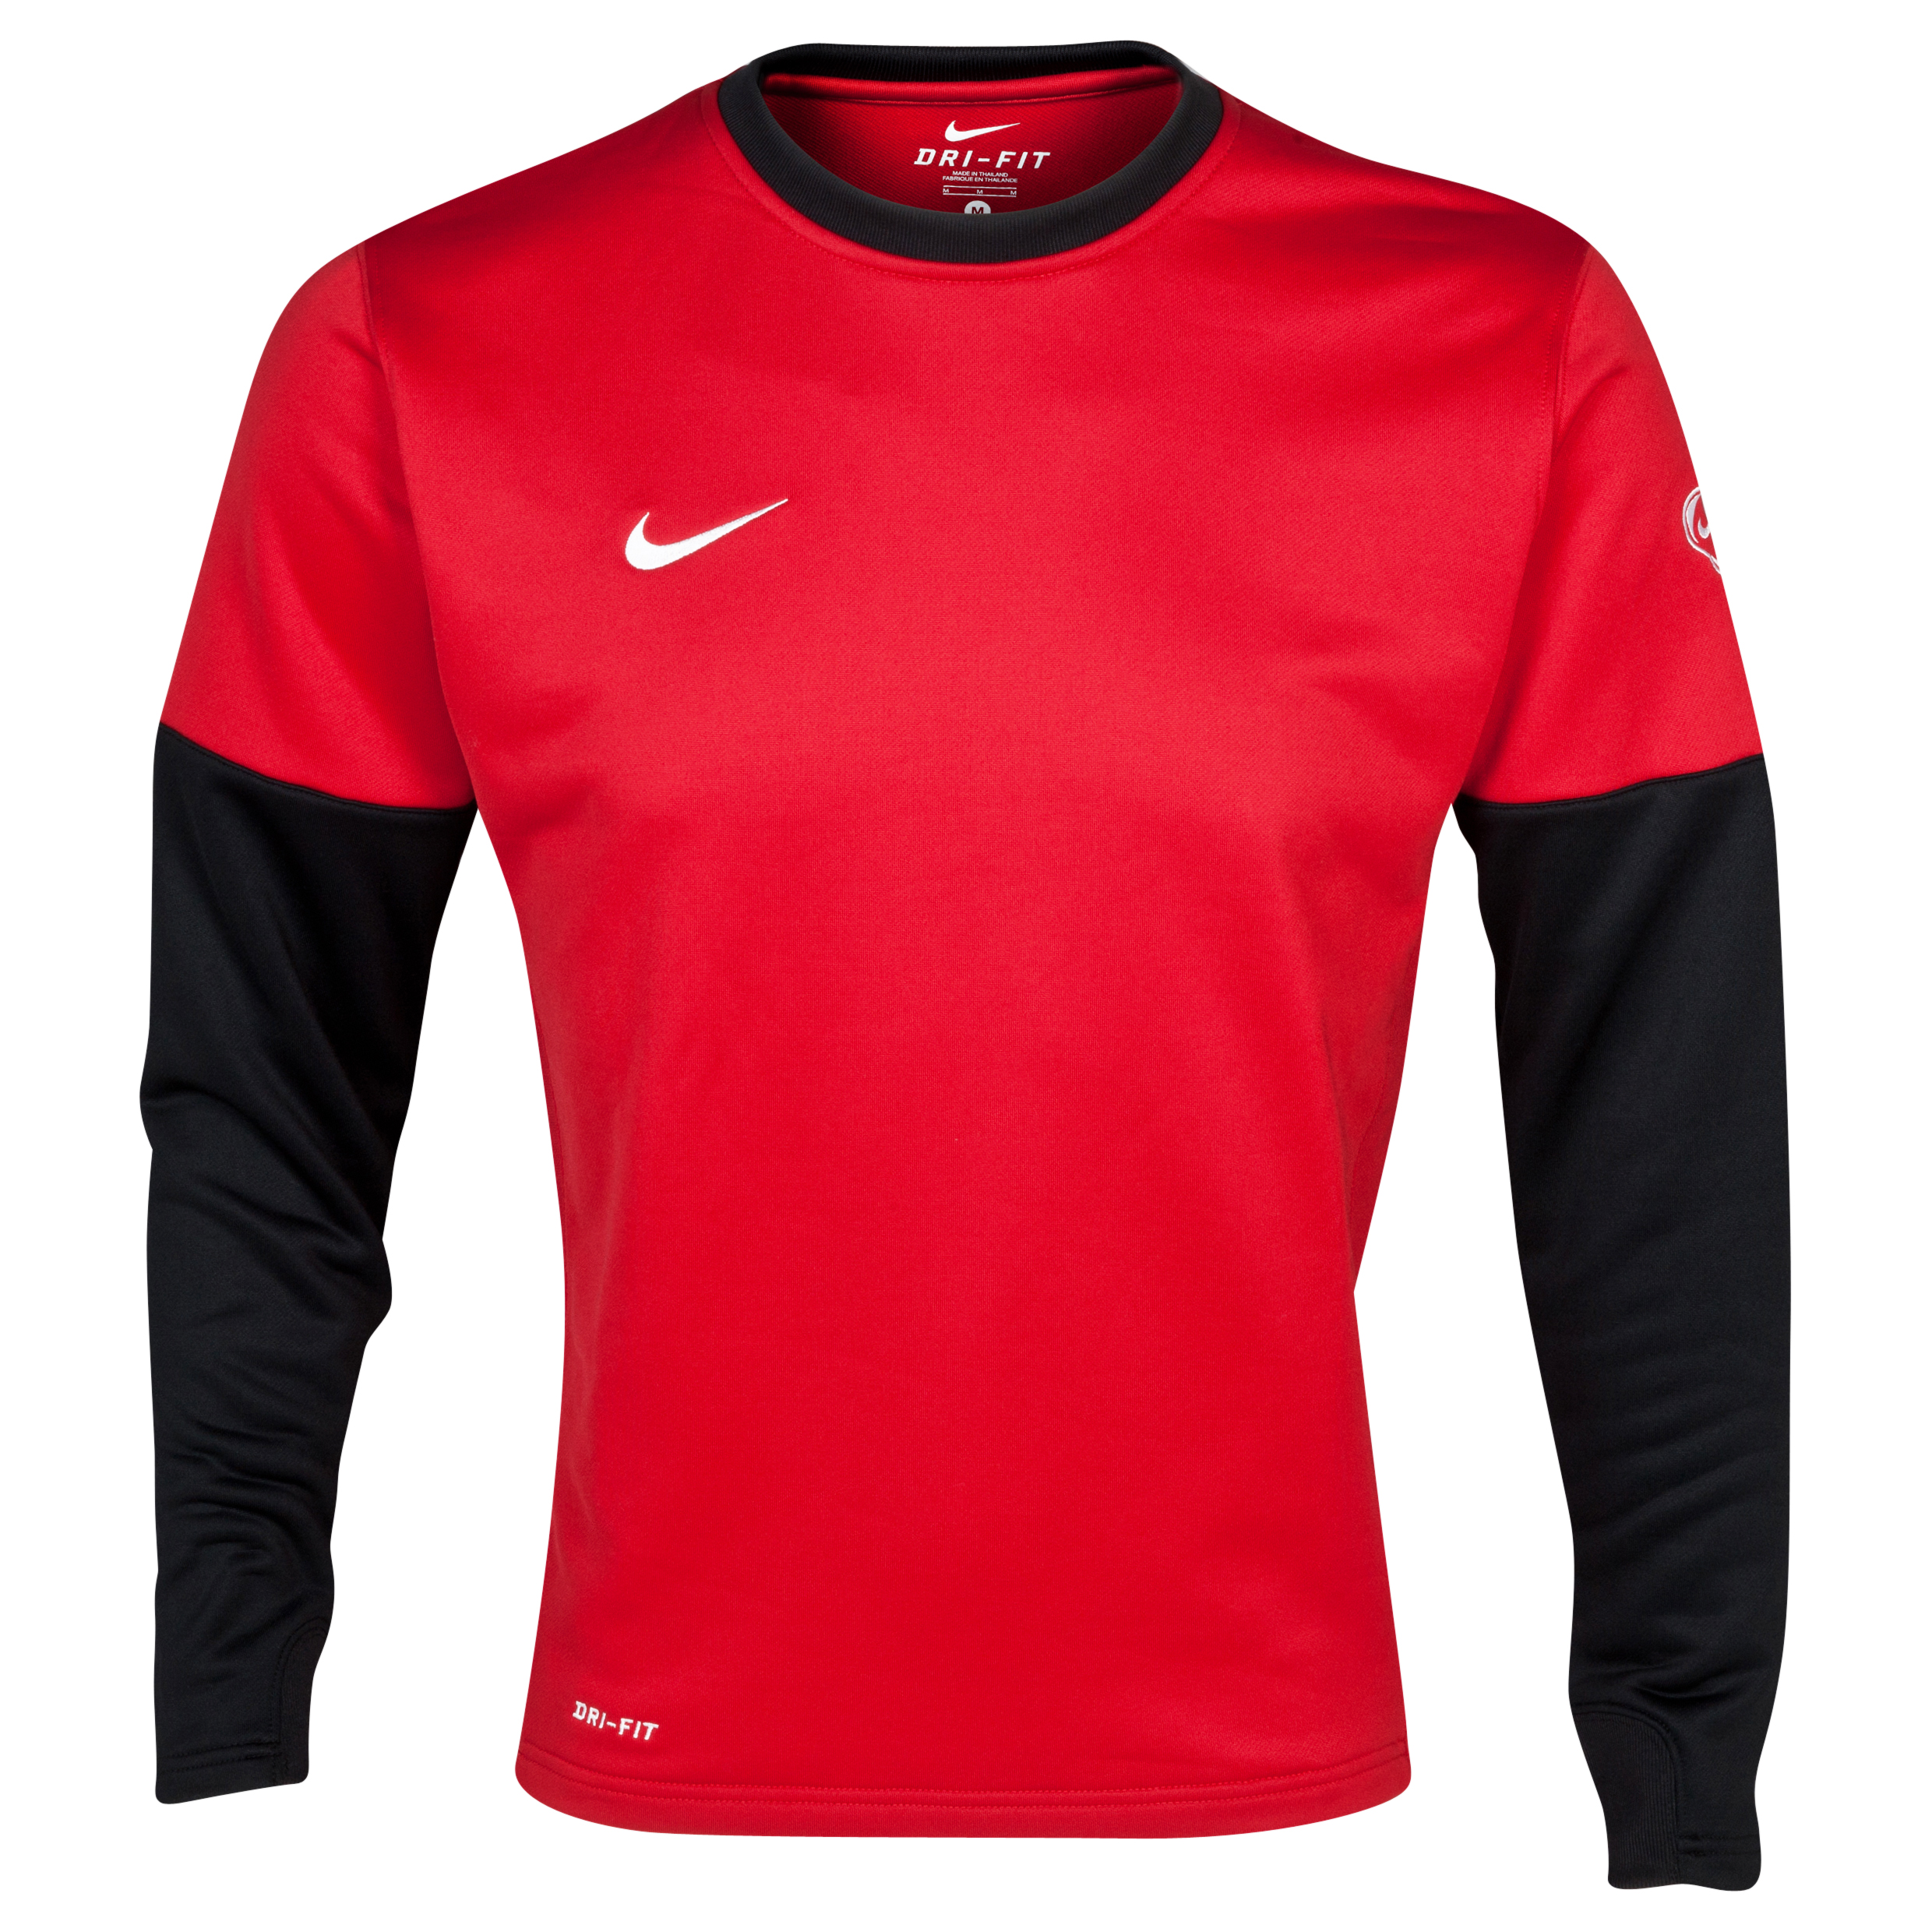 Nike Club Crew Top - Varsity Red/Black/White - Long Sleeved   - Varsity Red/Black/White